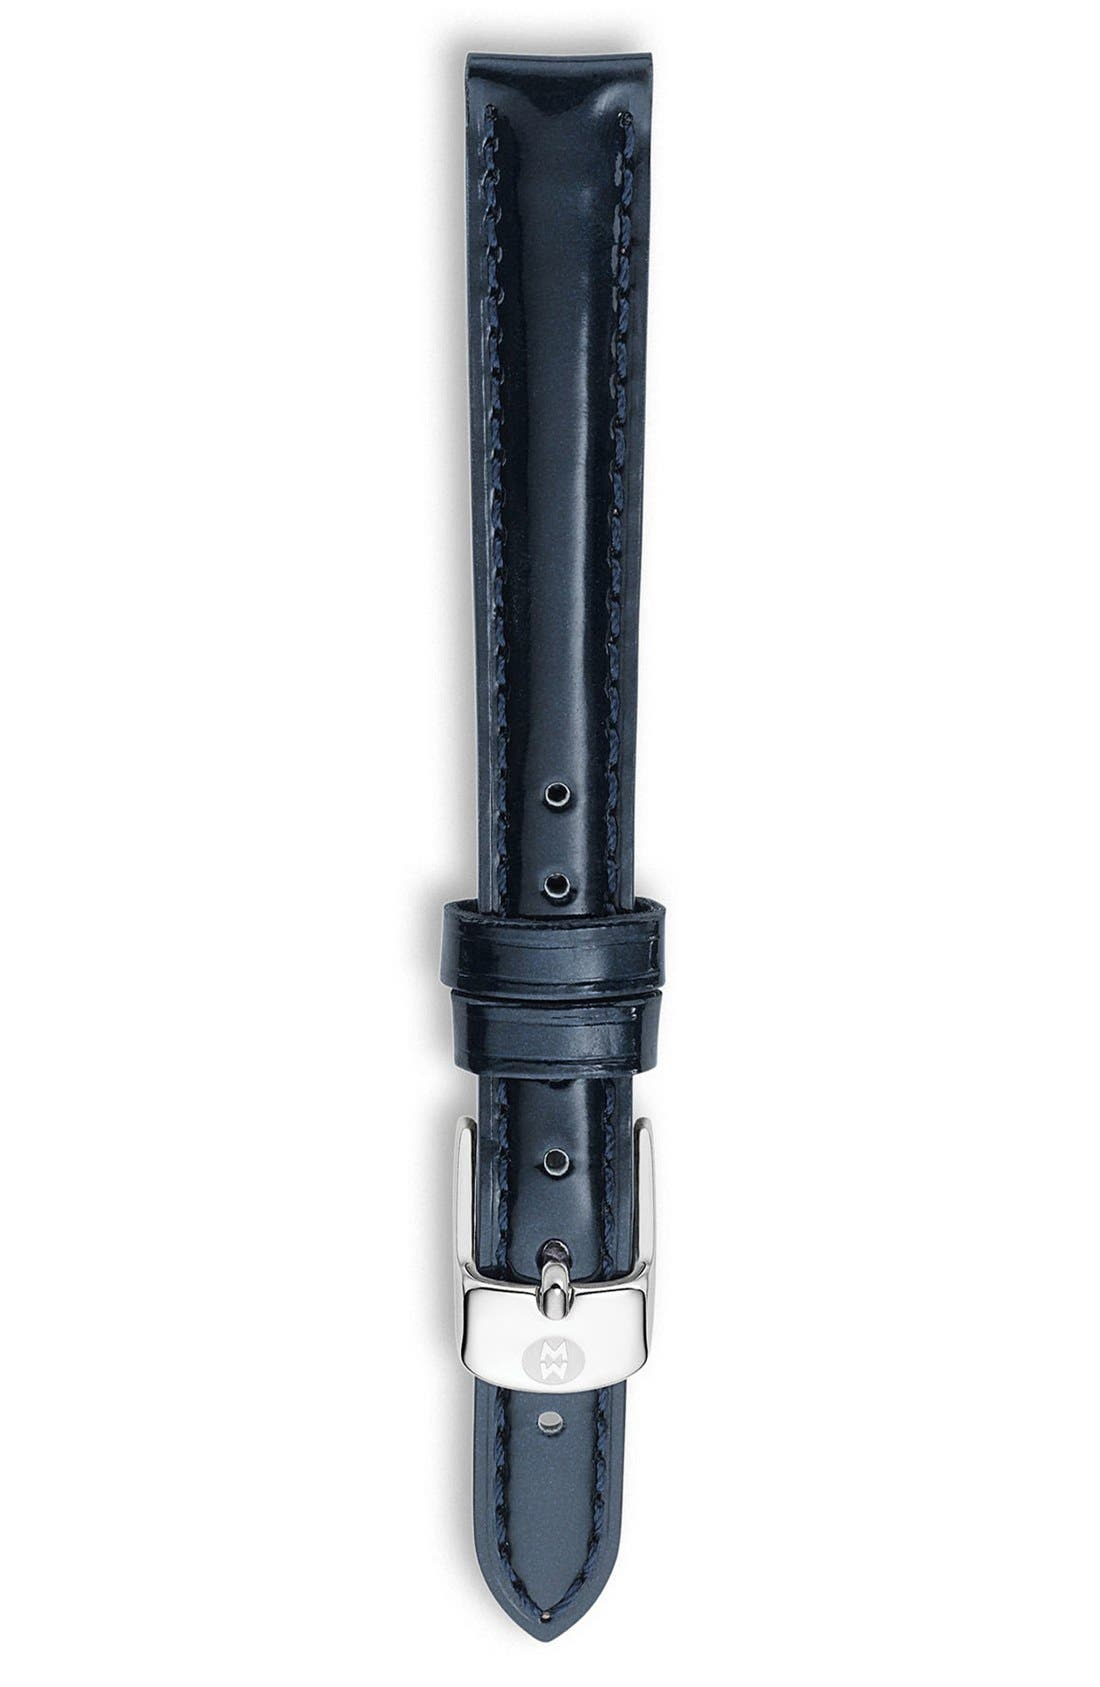 Main Image - MICHELE 12mm Patent Leather Watch Strap